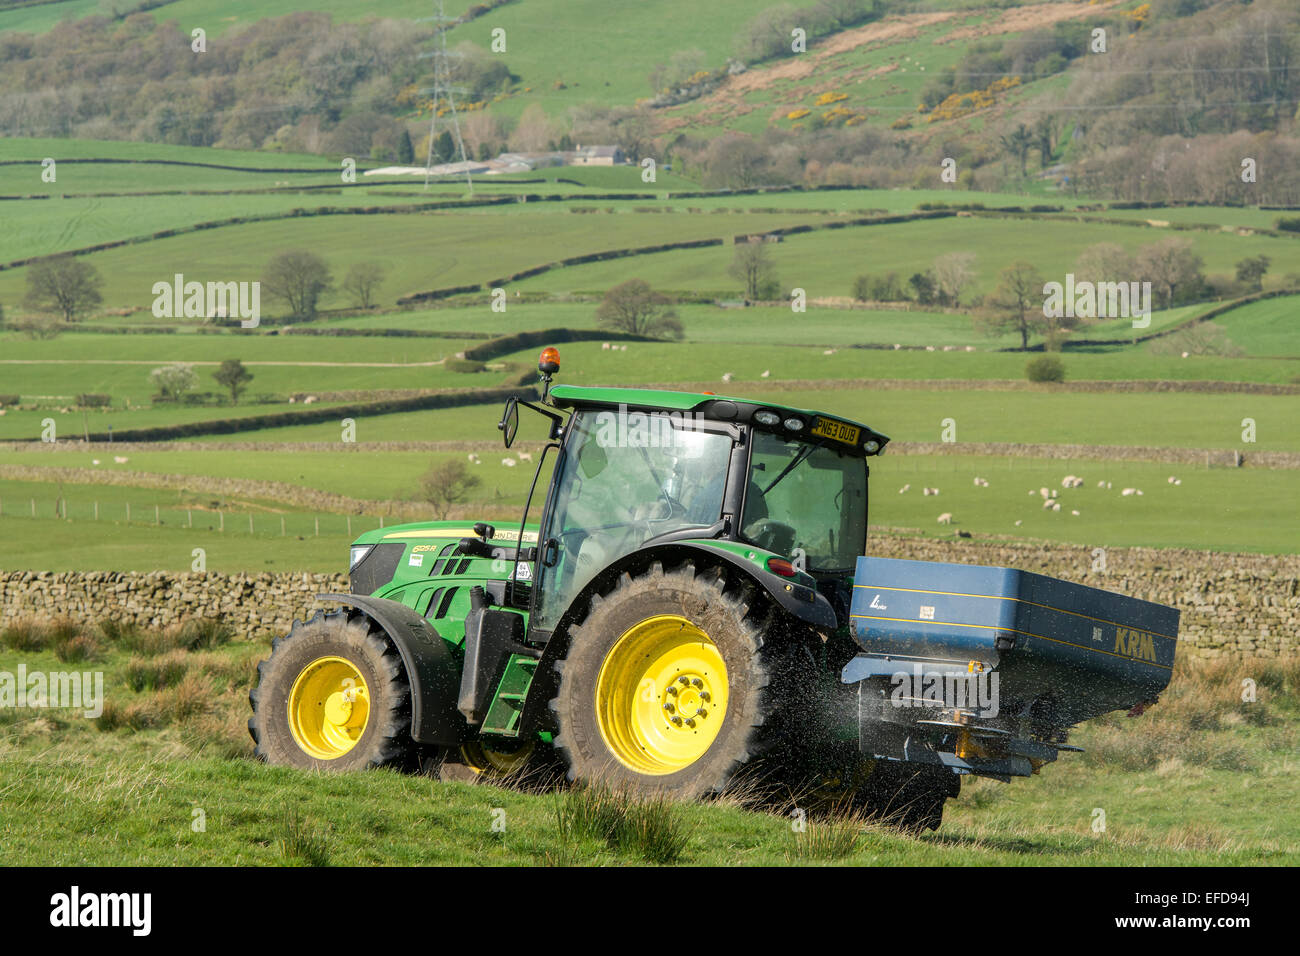 John Deere 6126r spreading fertiliser on upland pasture, Lancashire, UK. - Stock Image